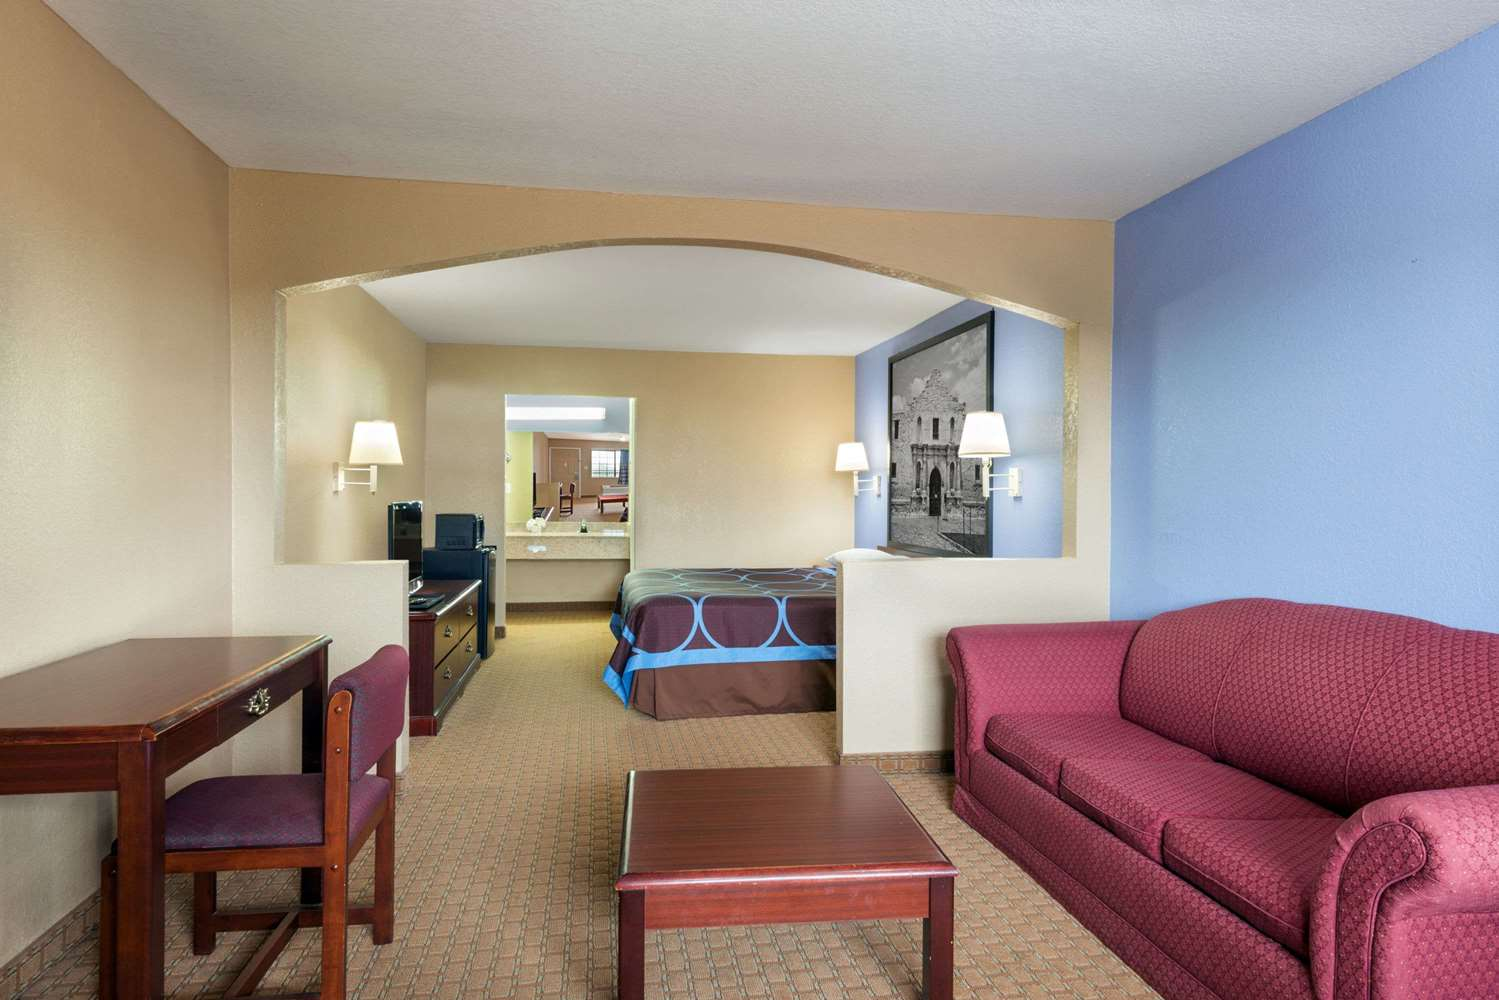 Cheap Hotel Rooms In Downtown San Antonio